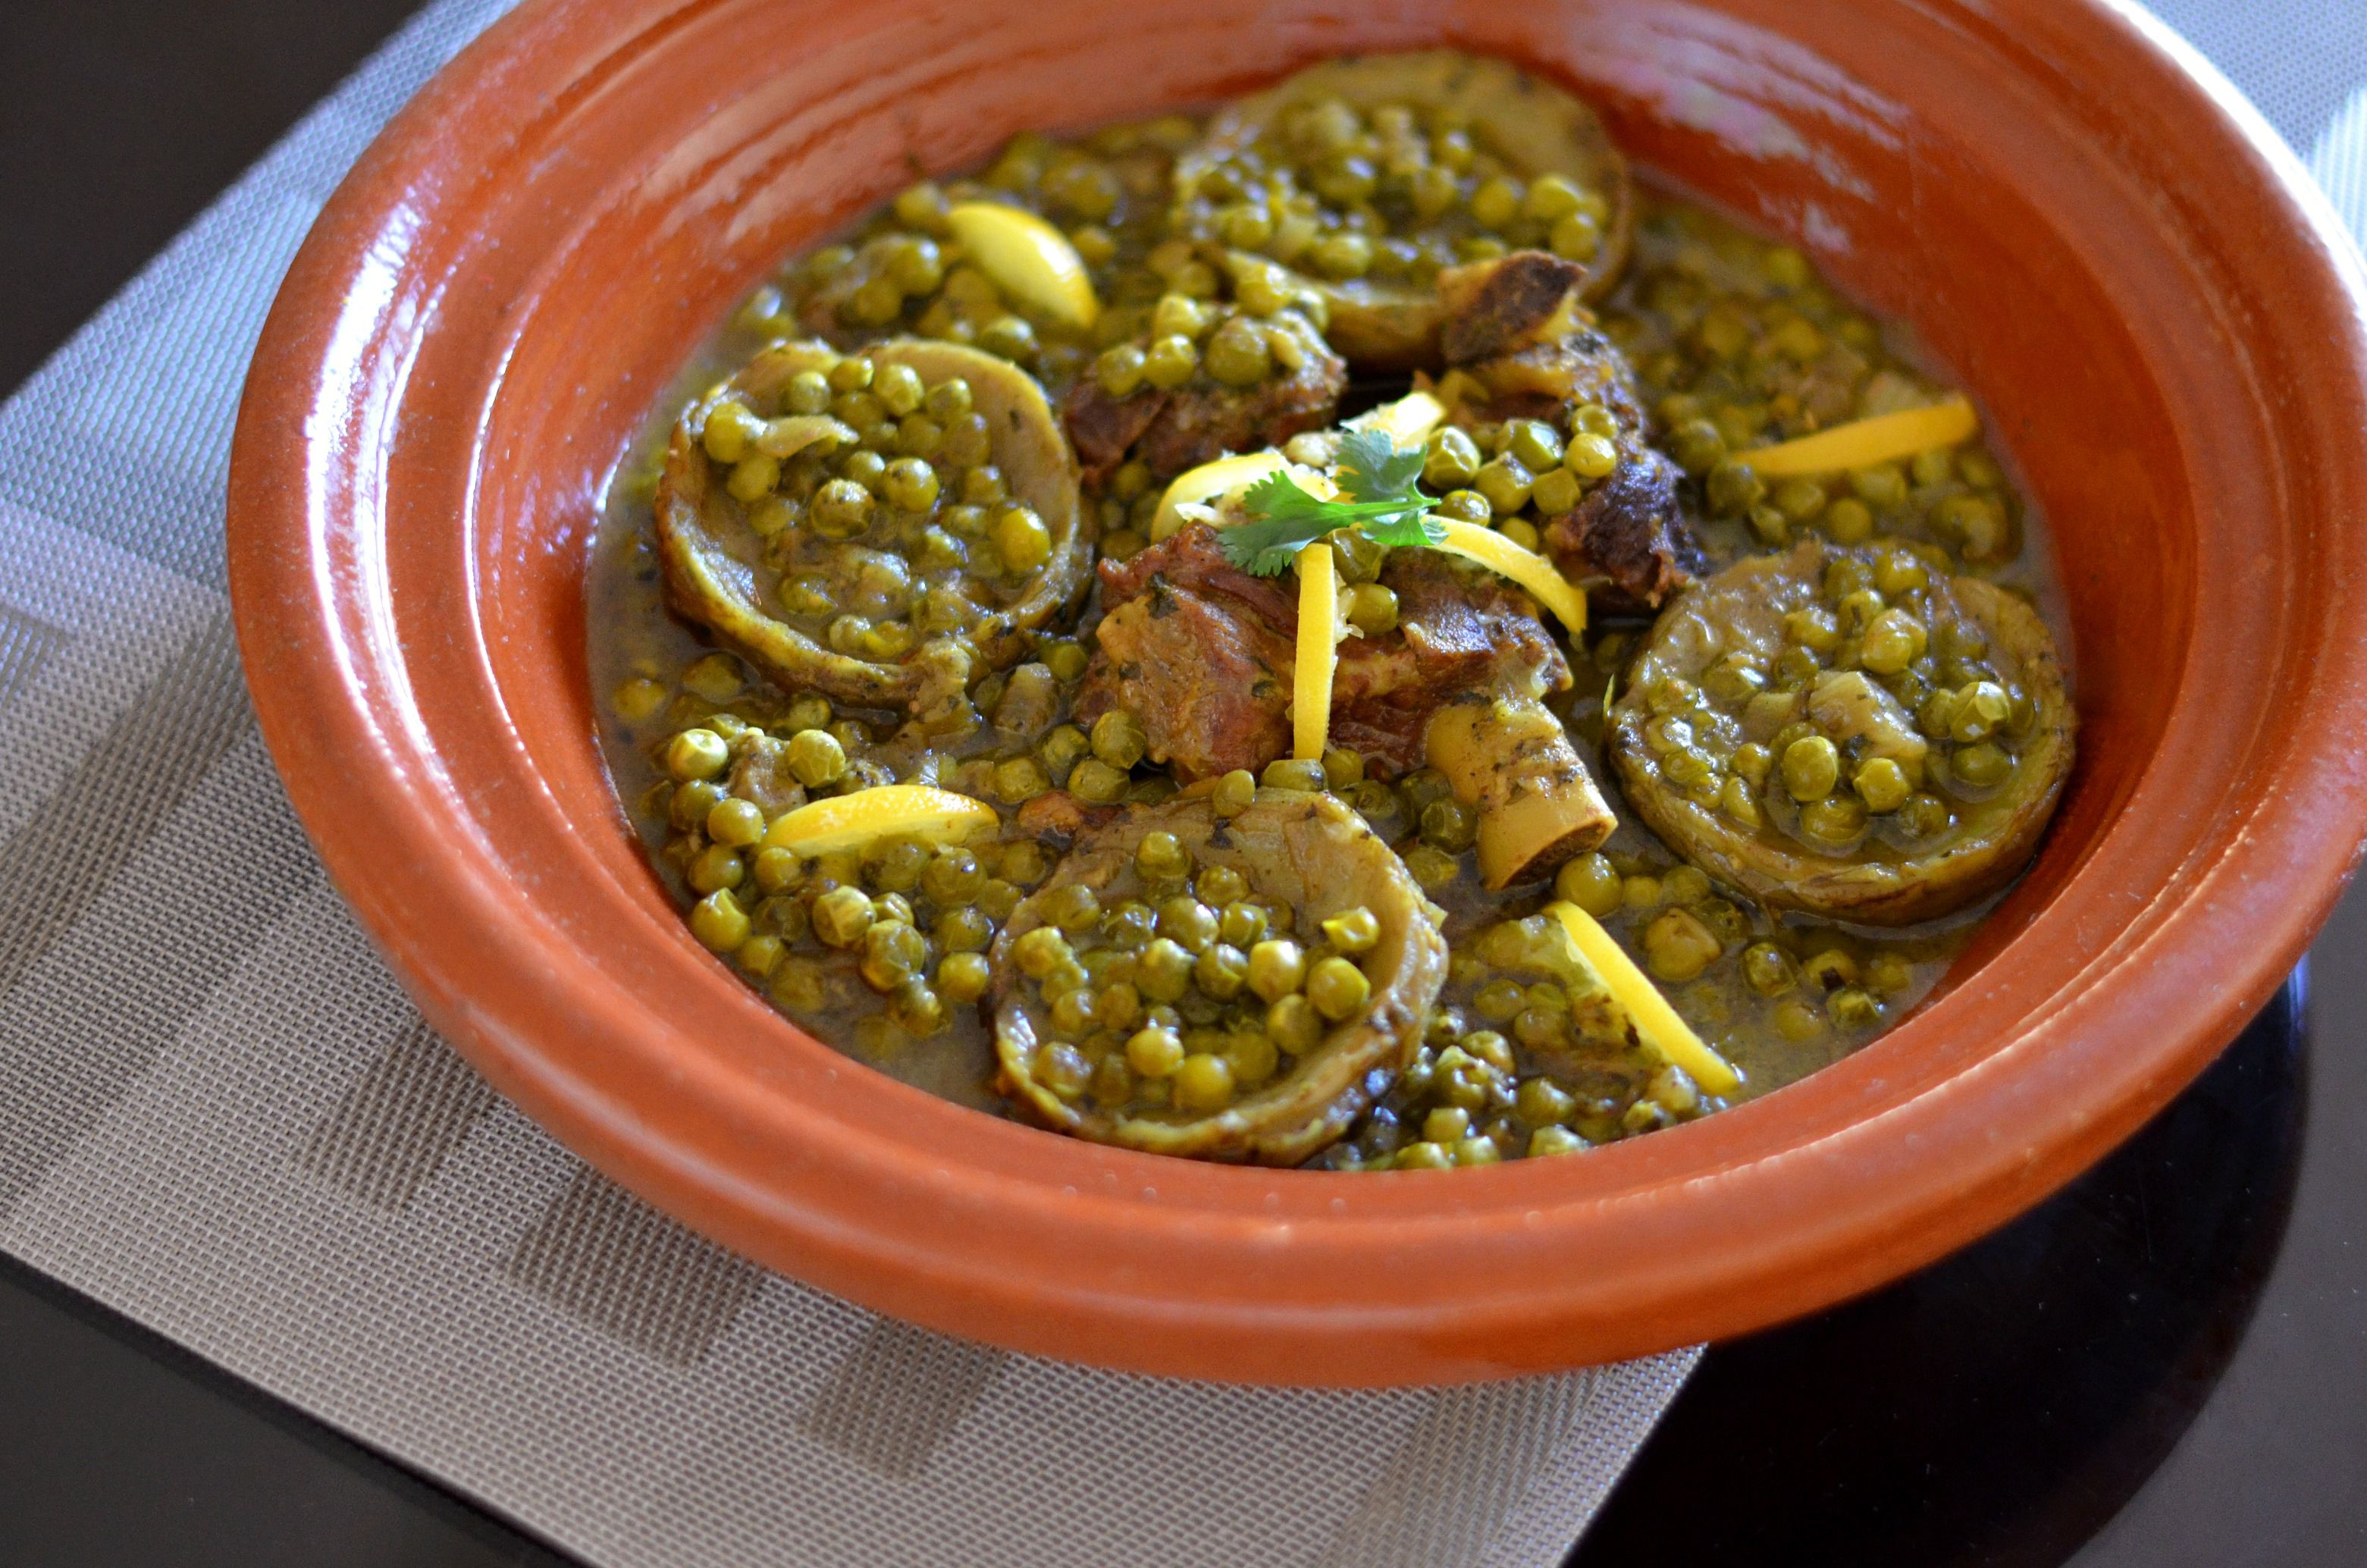 Lamb Beef Tagine Peas And Artichokes 2394652 on heating and cooling plumbing